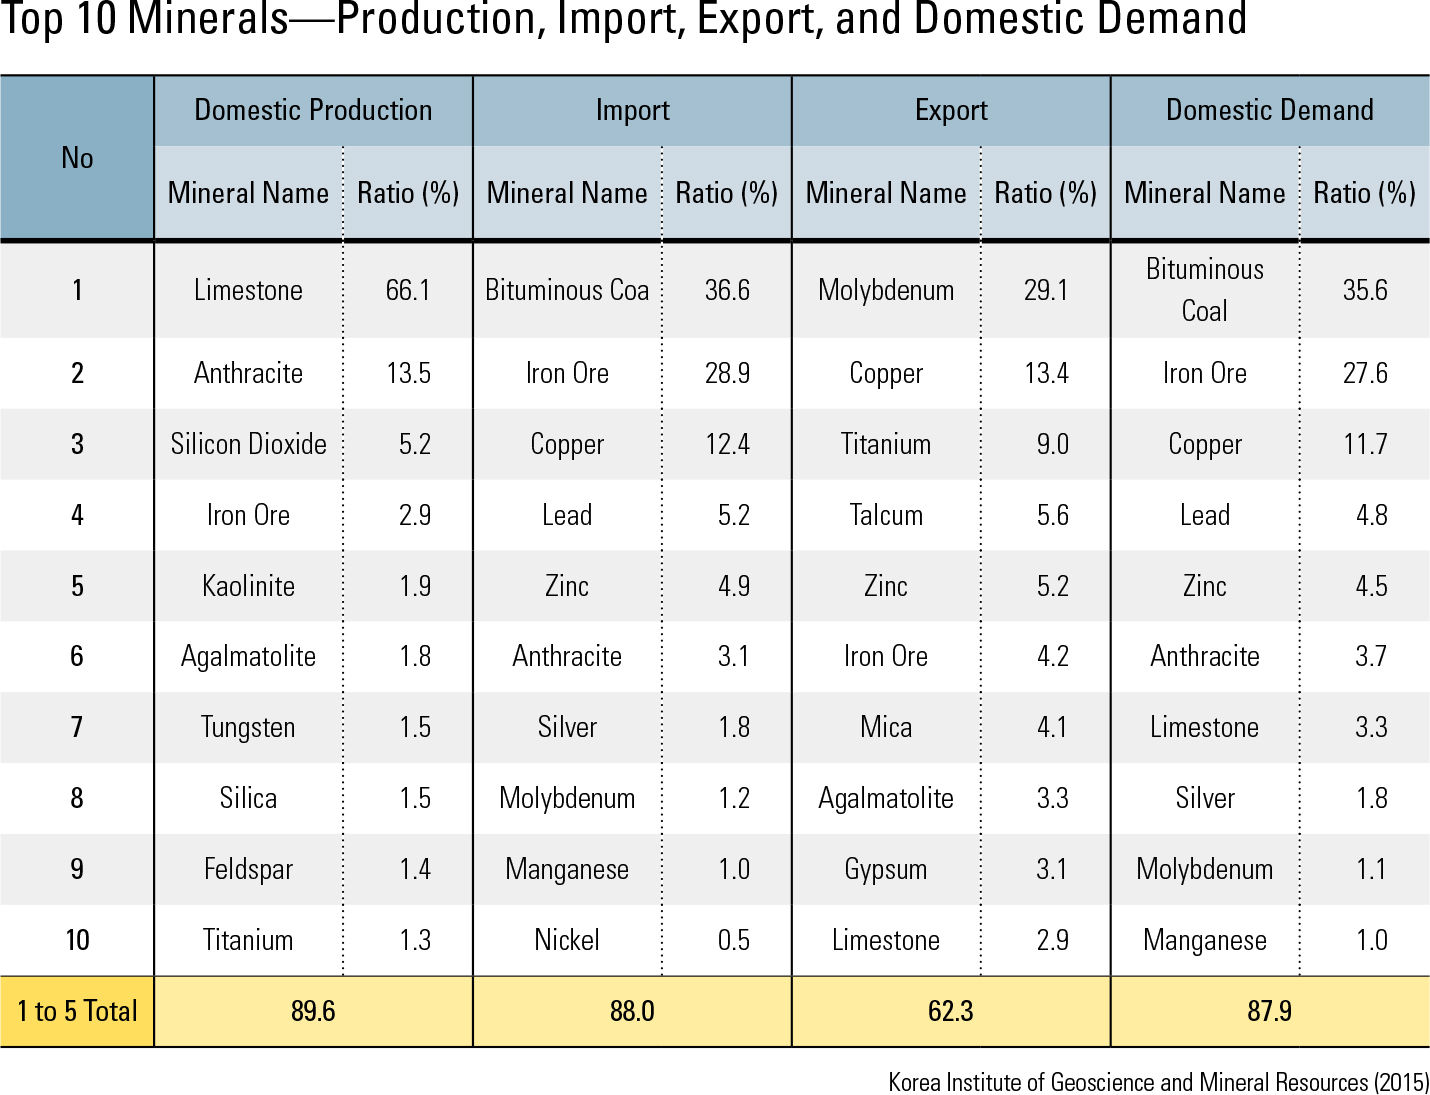 "Top 10 Minerals—Production, Import, Export, and Domestic Demand<p class=""oz_zoom"" zimg=""http://imagedata.cafe24.com/us_3/us3_25-2_2.jpg""><span style=""font-family:Nanum Myeongjo;""><span style=""font-size:18px;""><span class=""label label-danger"">UPDATE DATA</span></span></p>"